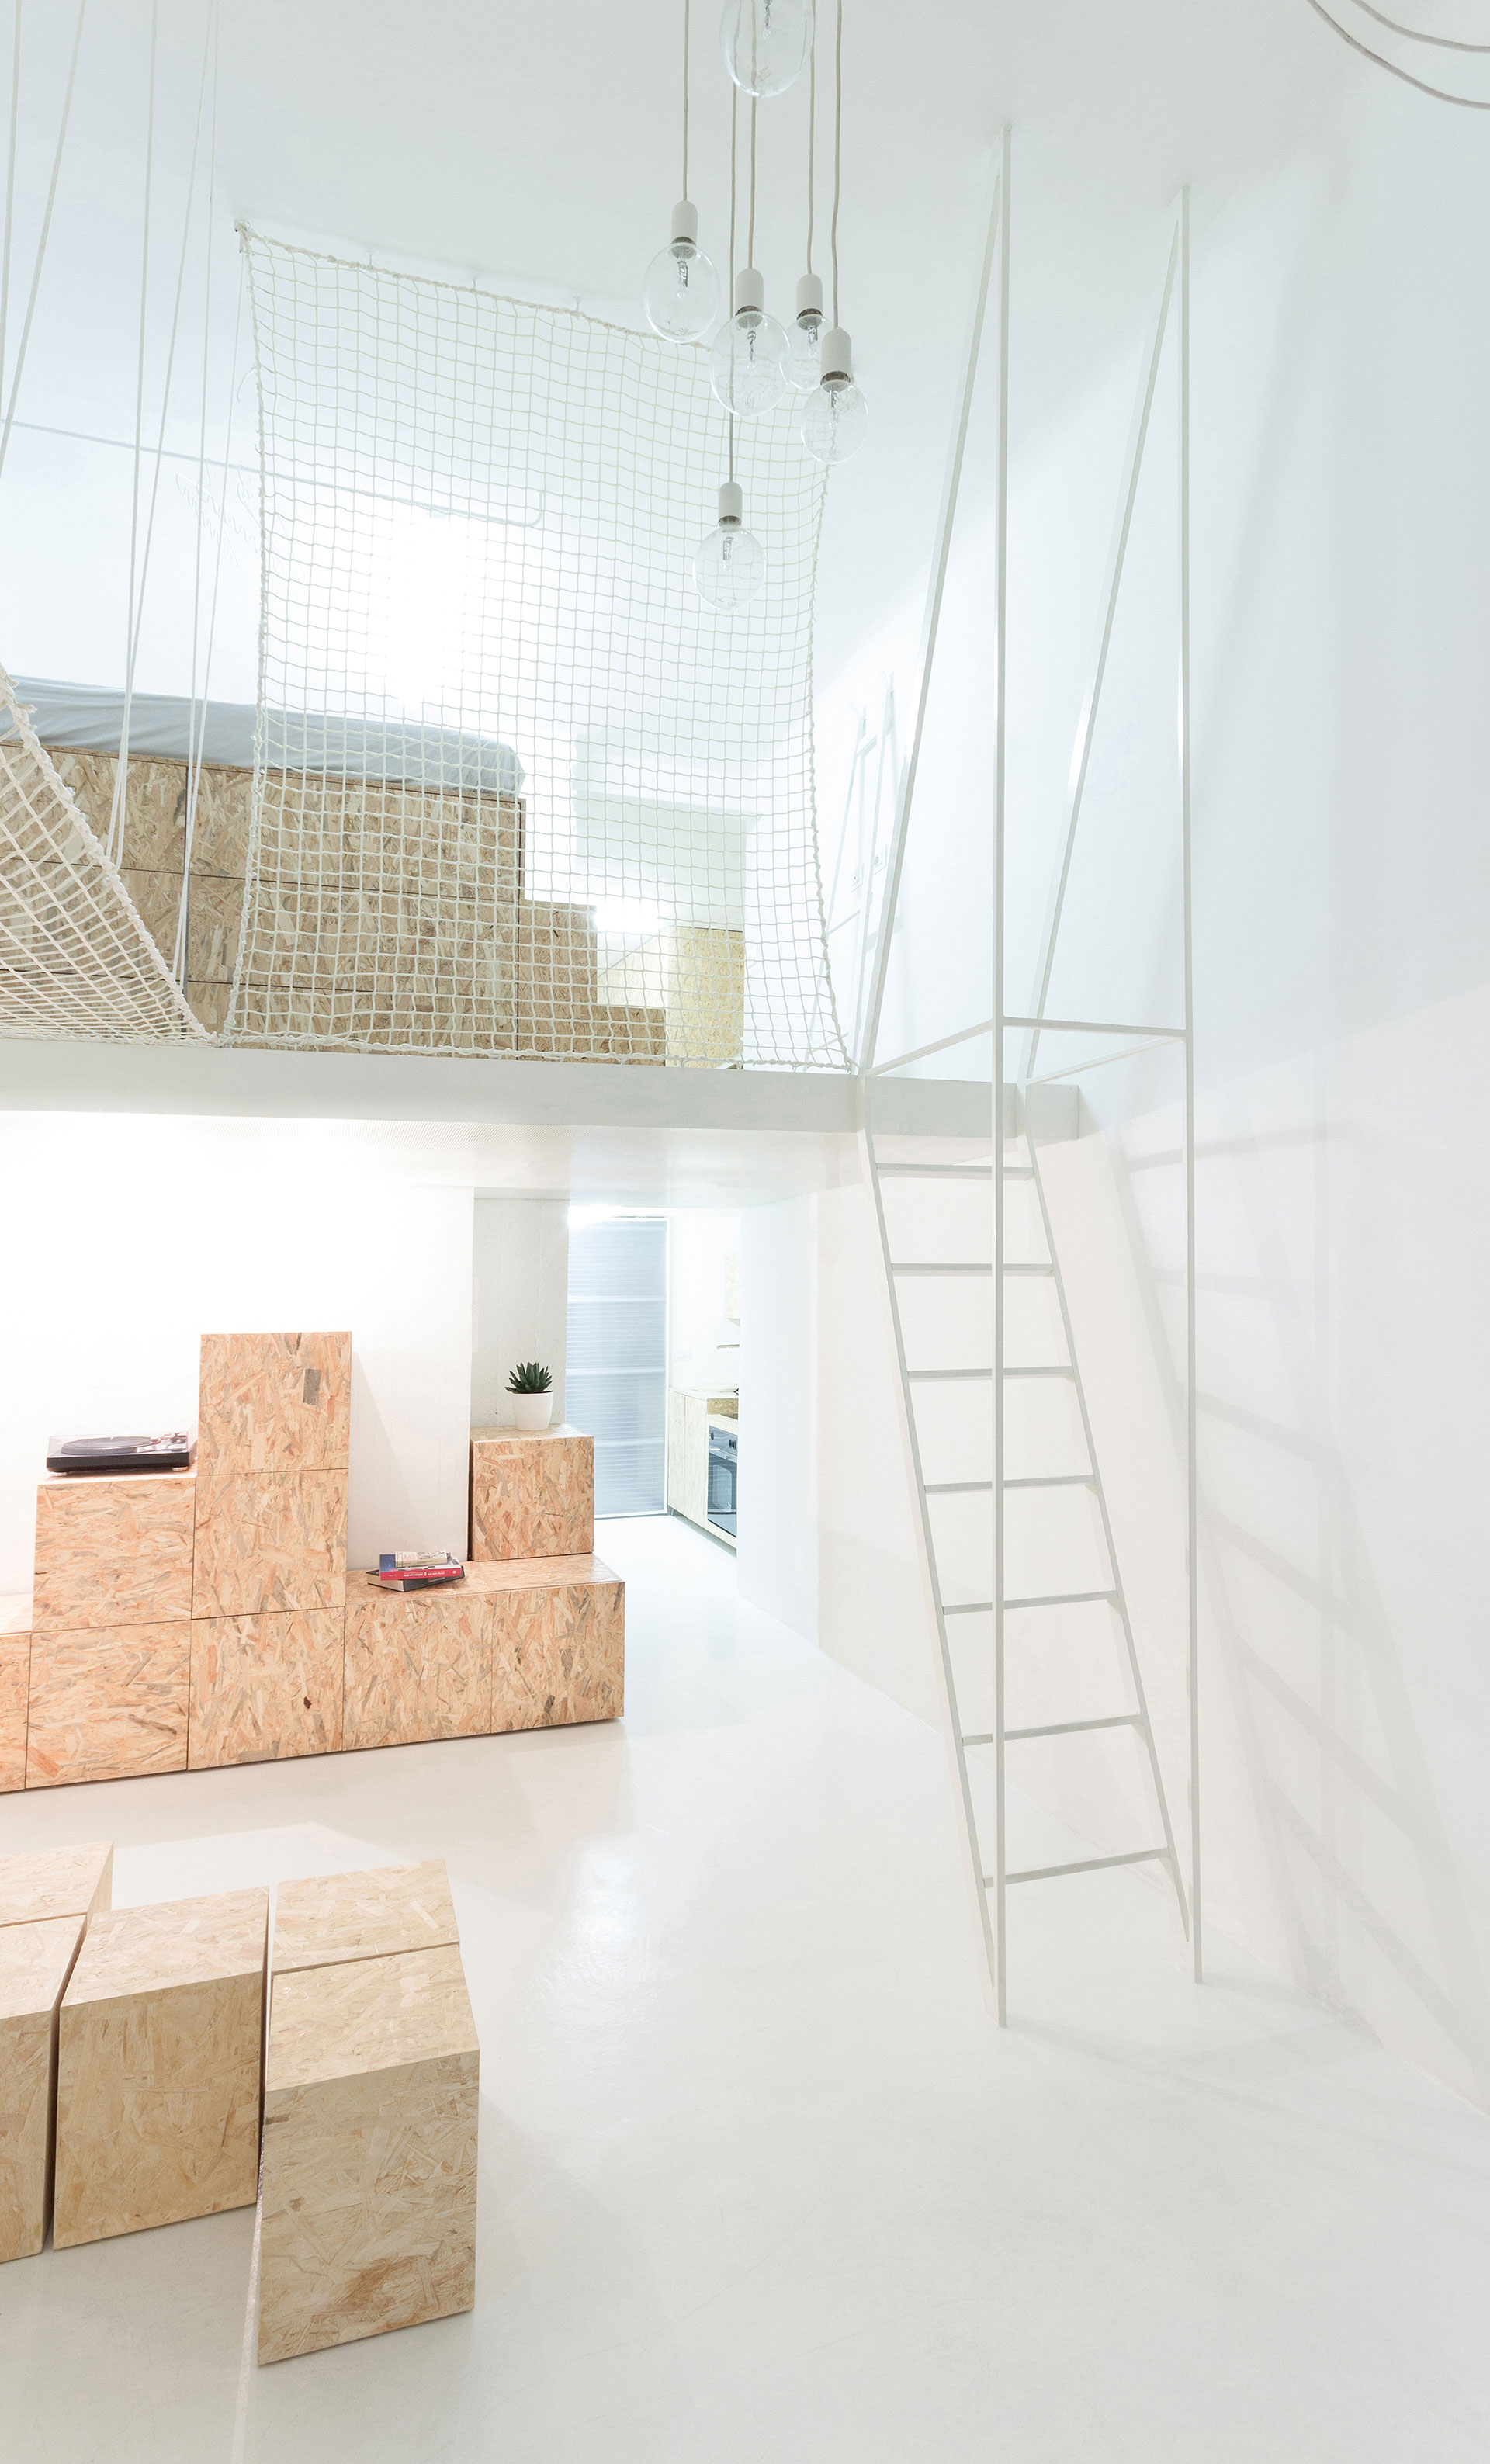 stairs officina dell'architettura (0)